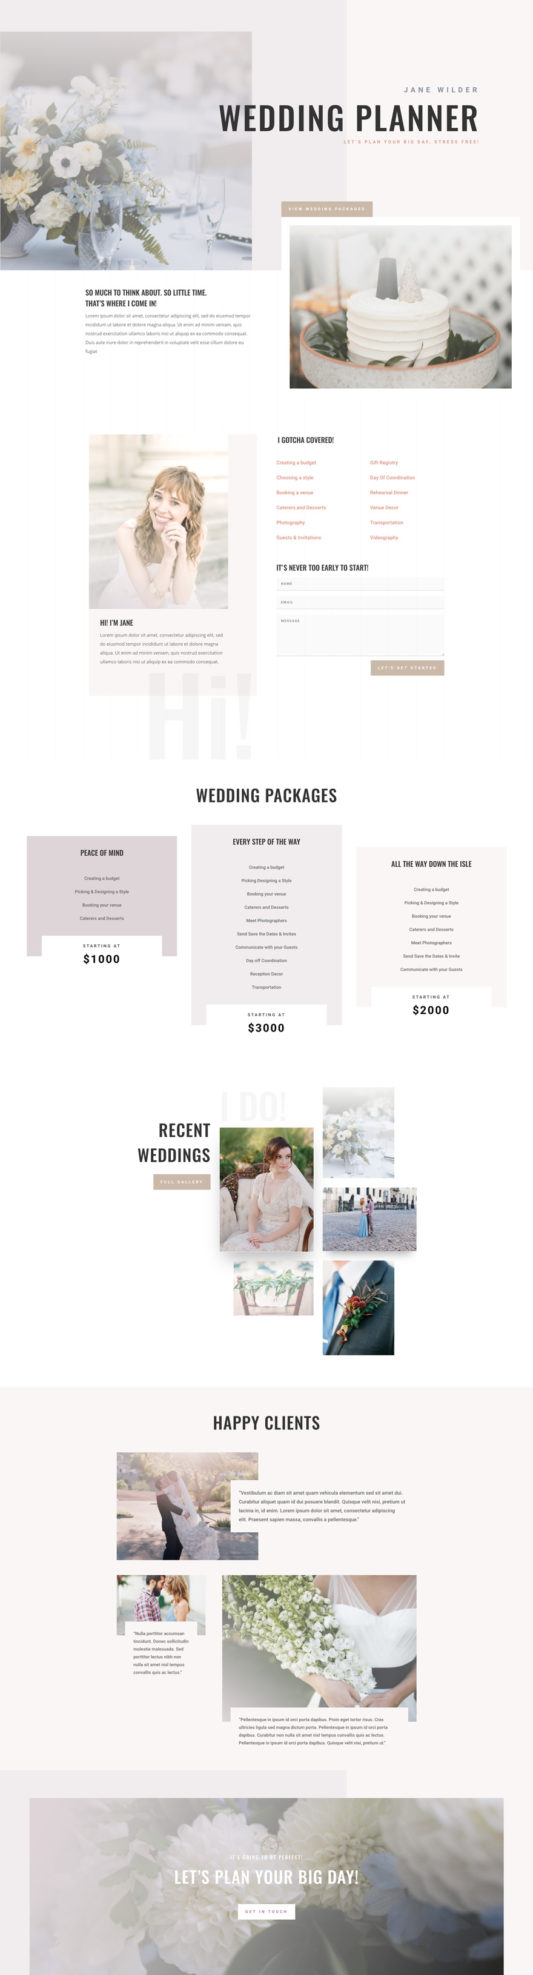 Wedding Planner Web Design 6